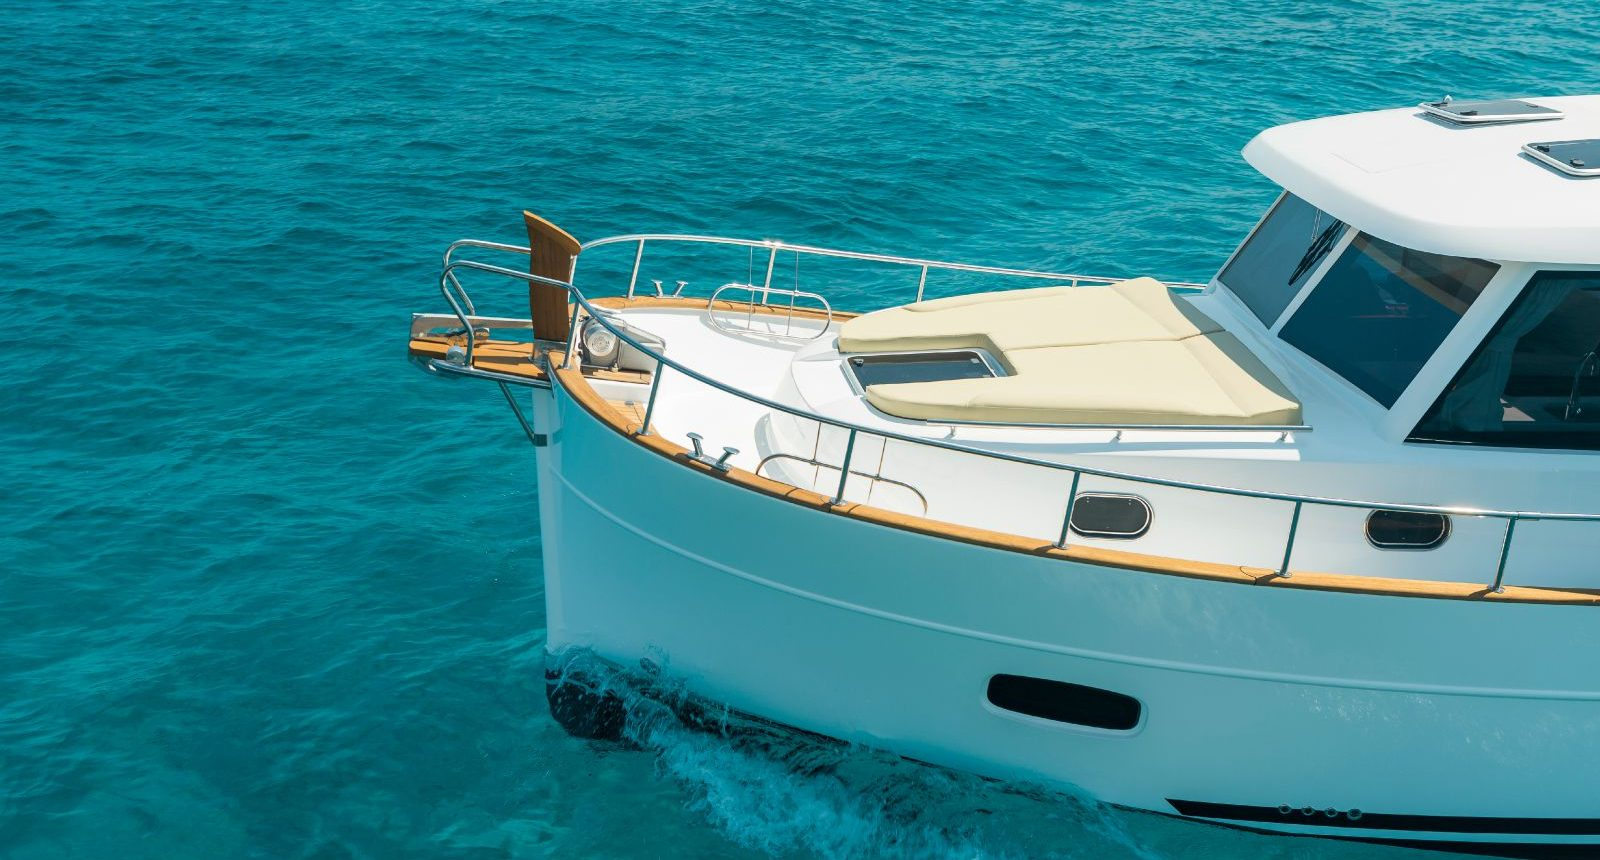 Minorca Islander 34 for sale - bow